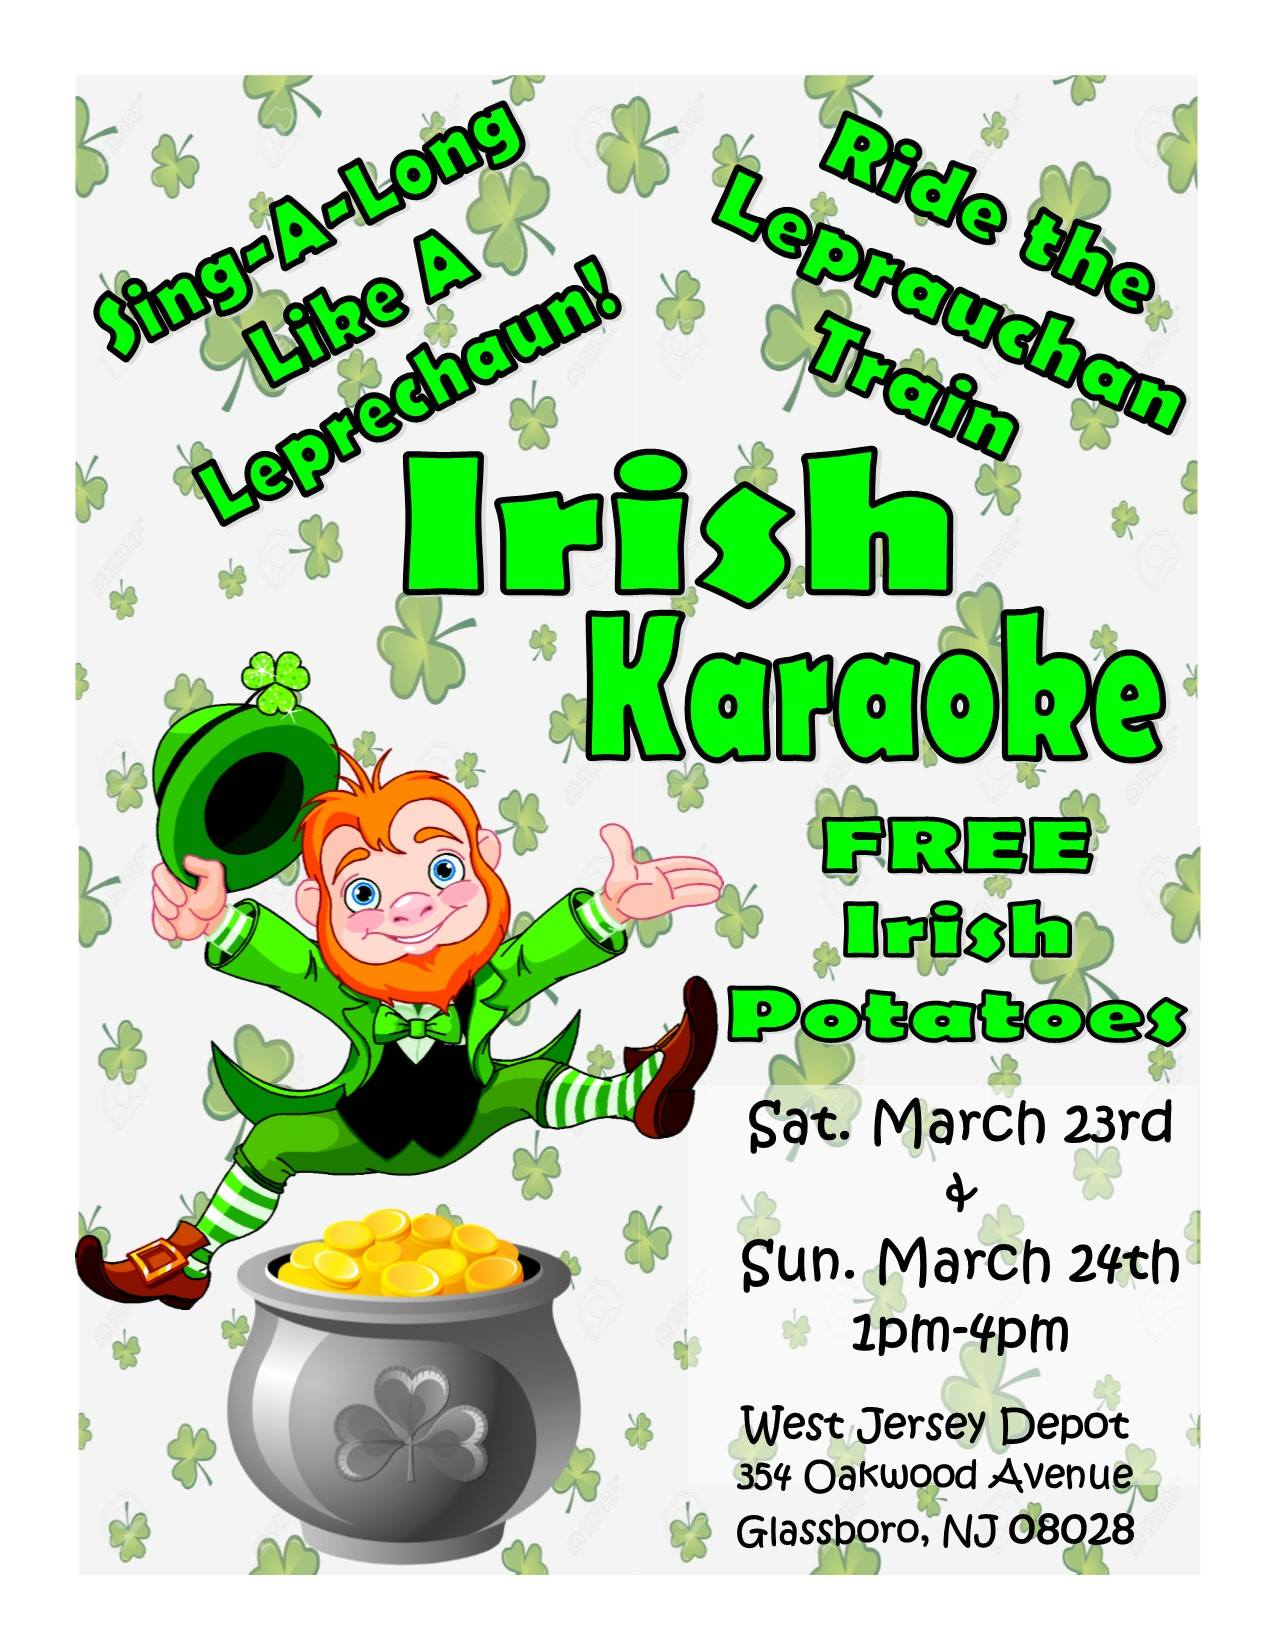 March Open House at the West Jersey Depot-Irish Karaoke!.jpg